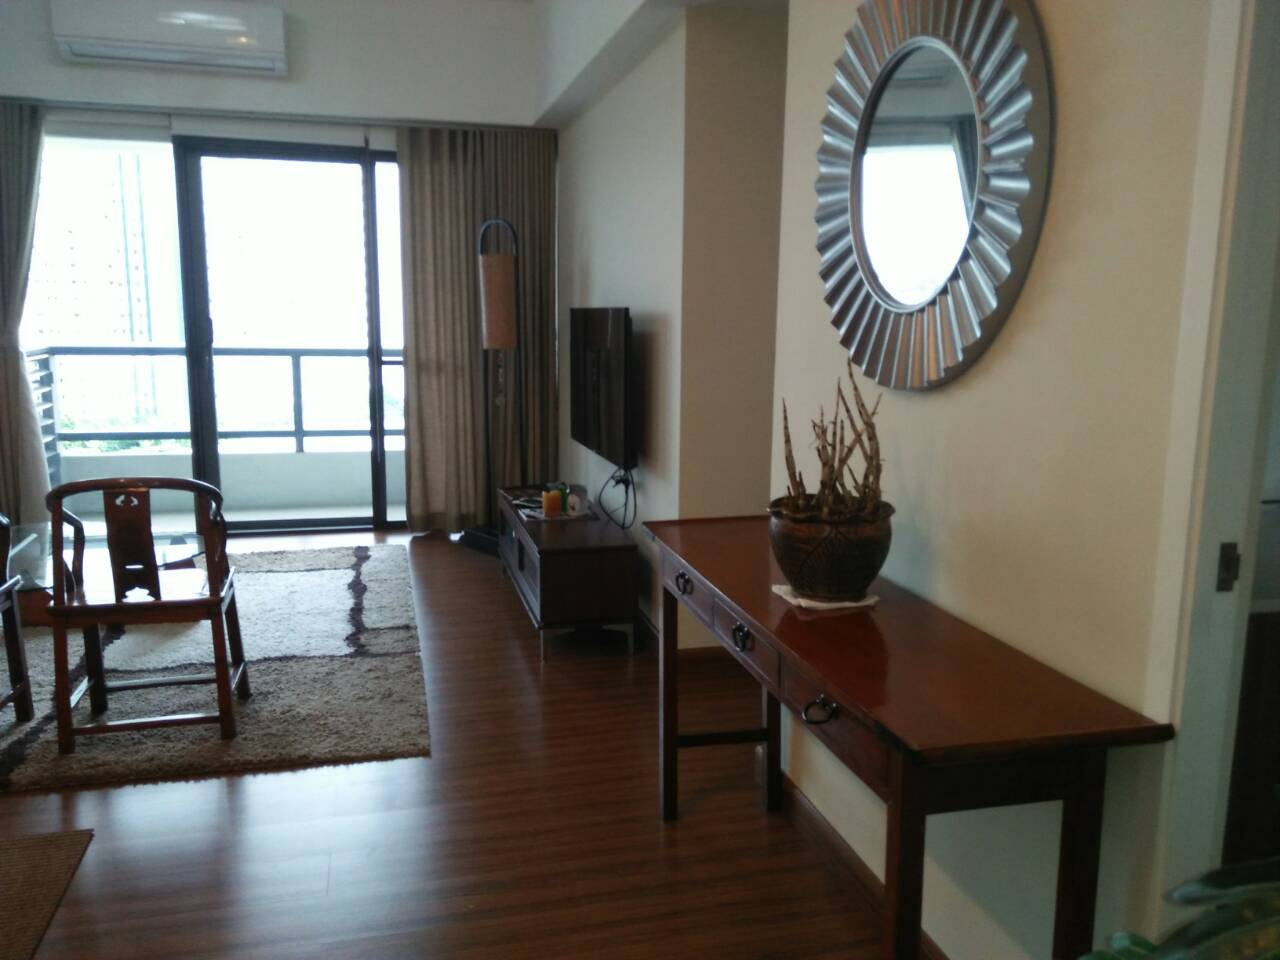 2 Bedrooms Condo, Shang Salcedo Place Living Area View 2